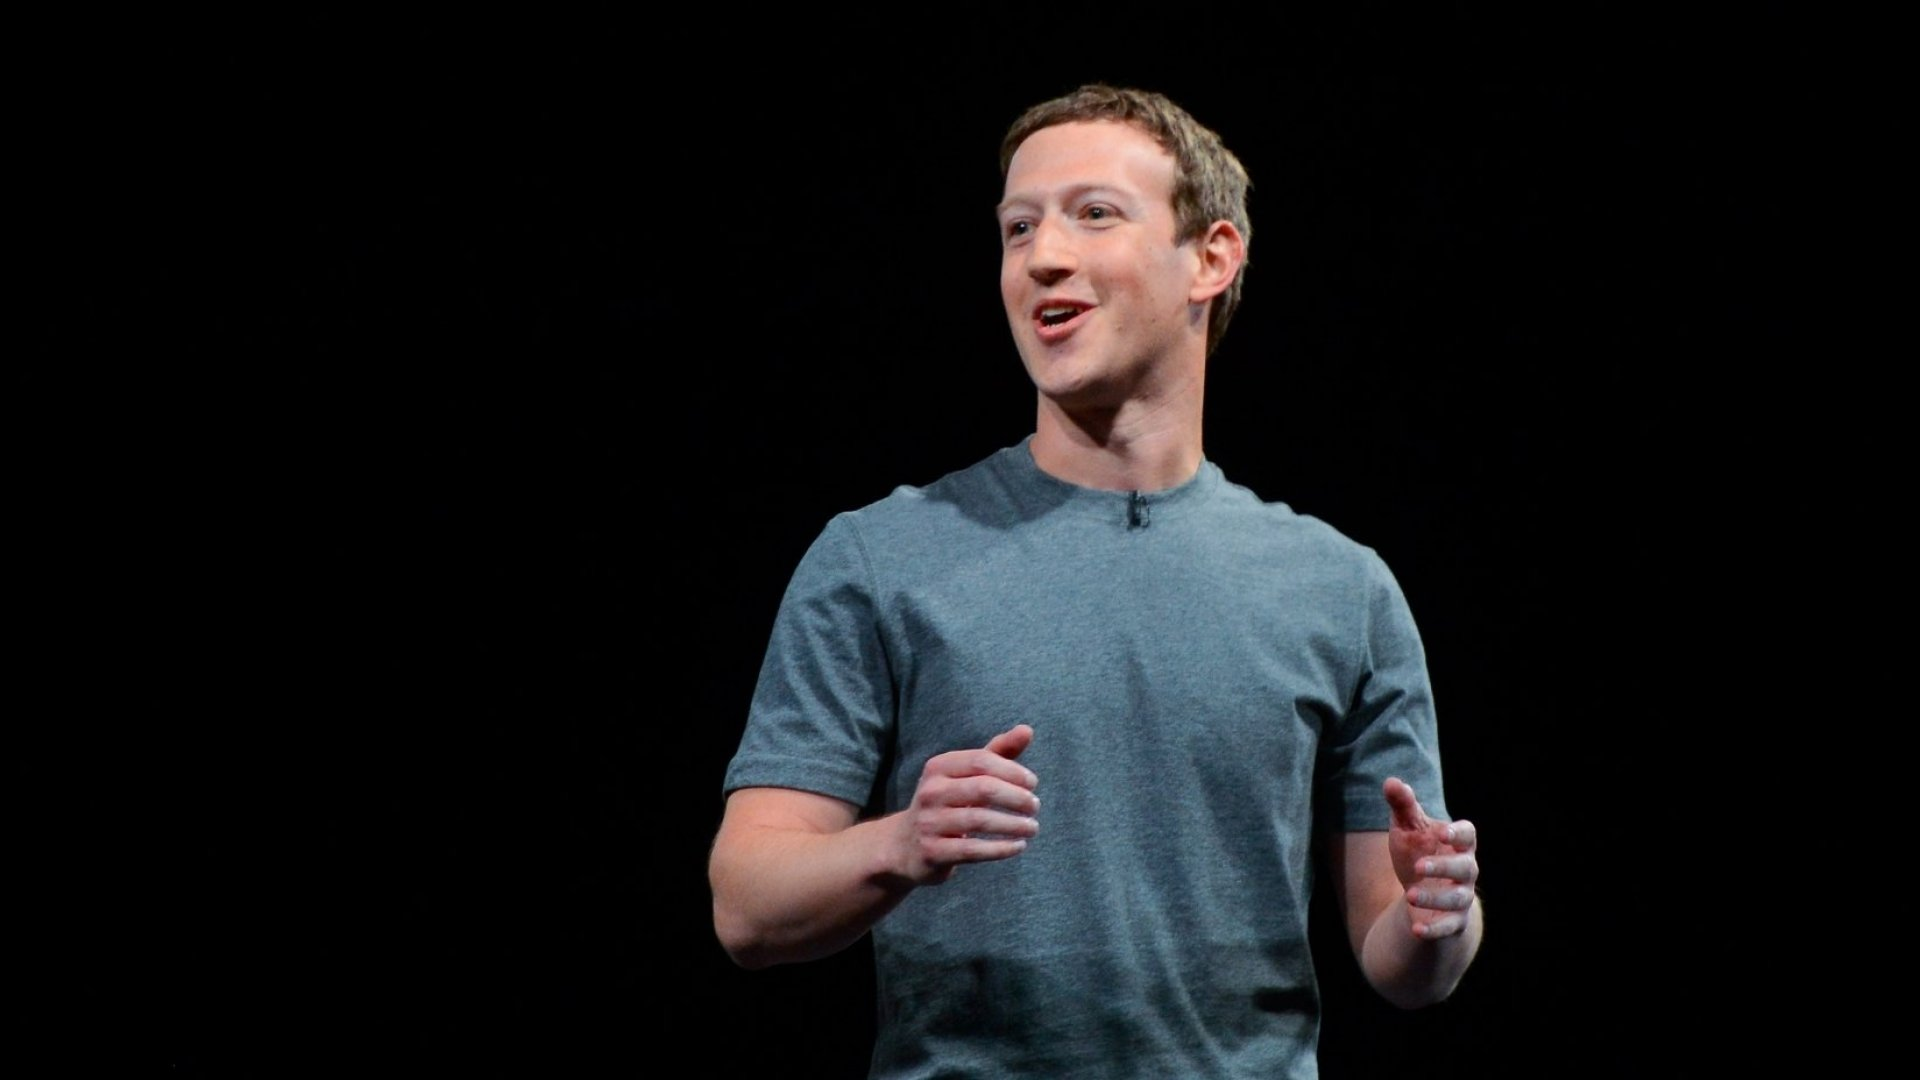 Mark Zuckerberg Finished Building His Robot Butler 'Jarvis' (and It Sounds Awesome)